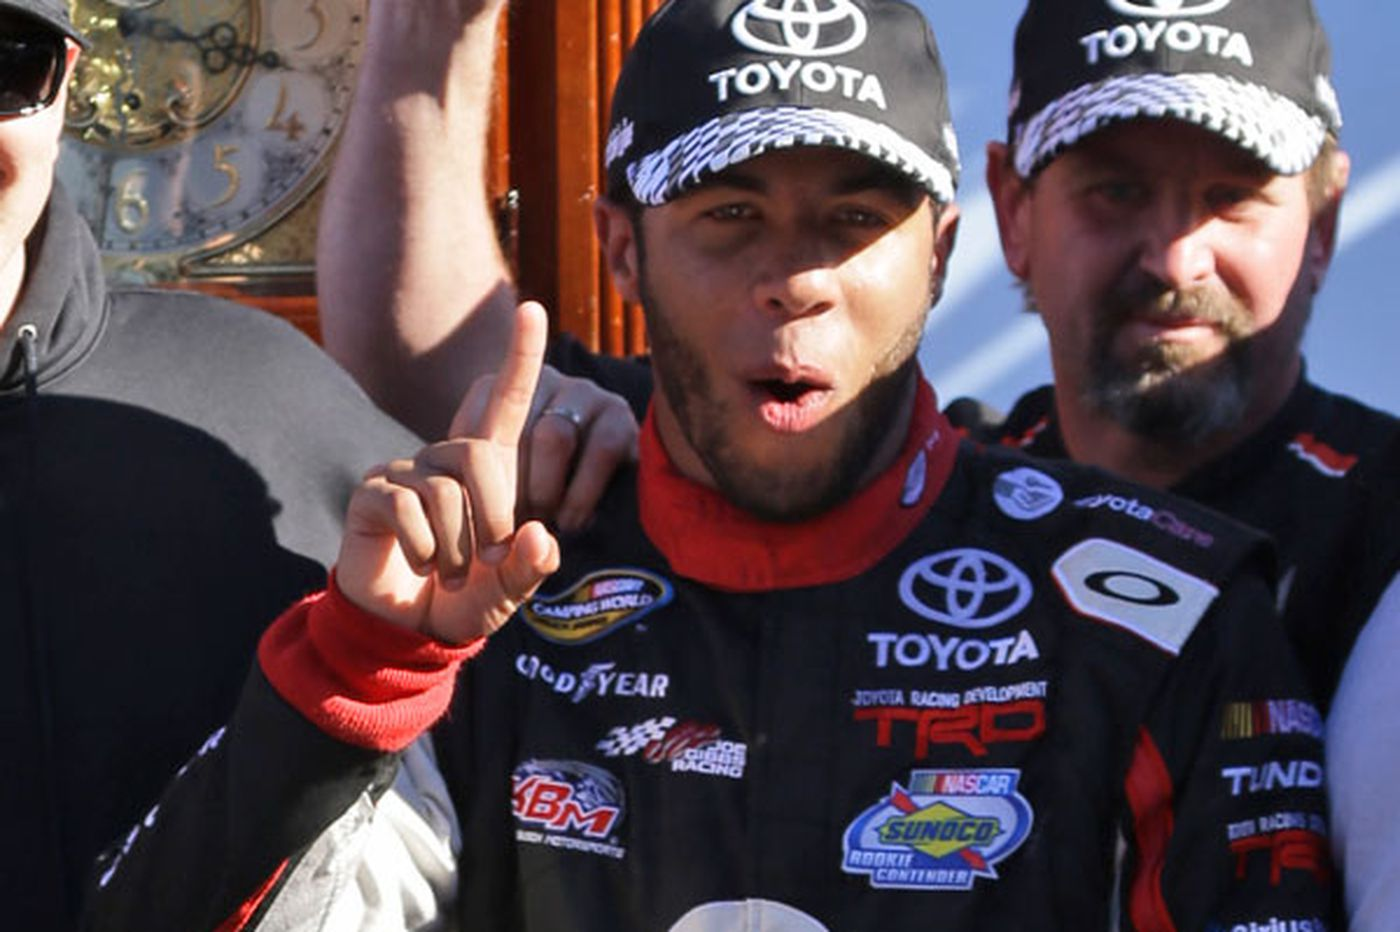 Wallace's victory in truck series is a win for diversity